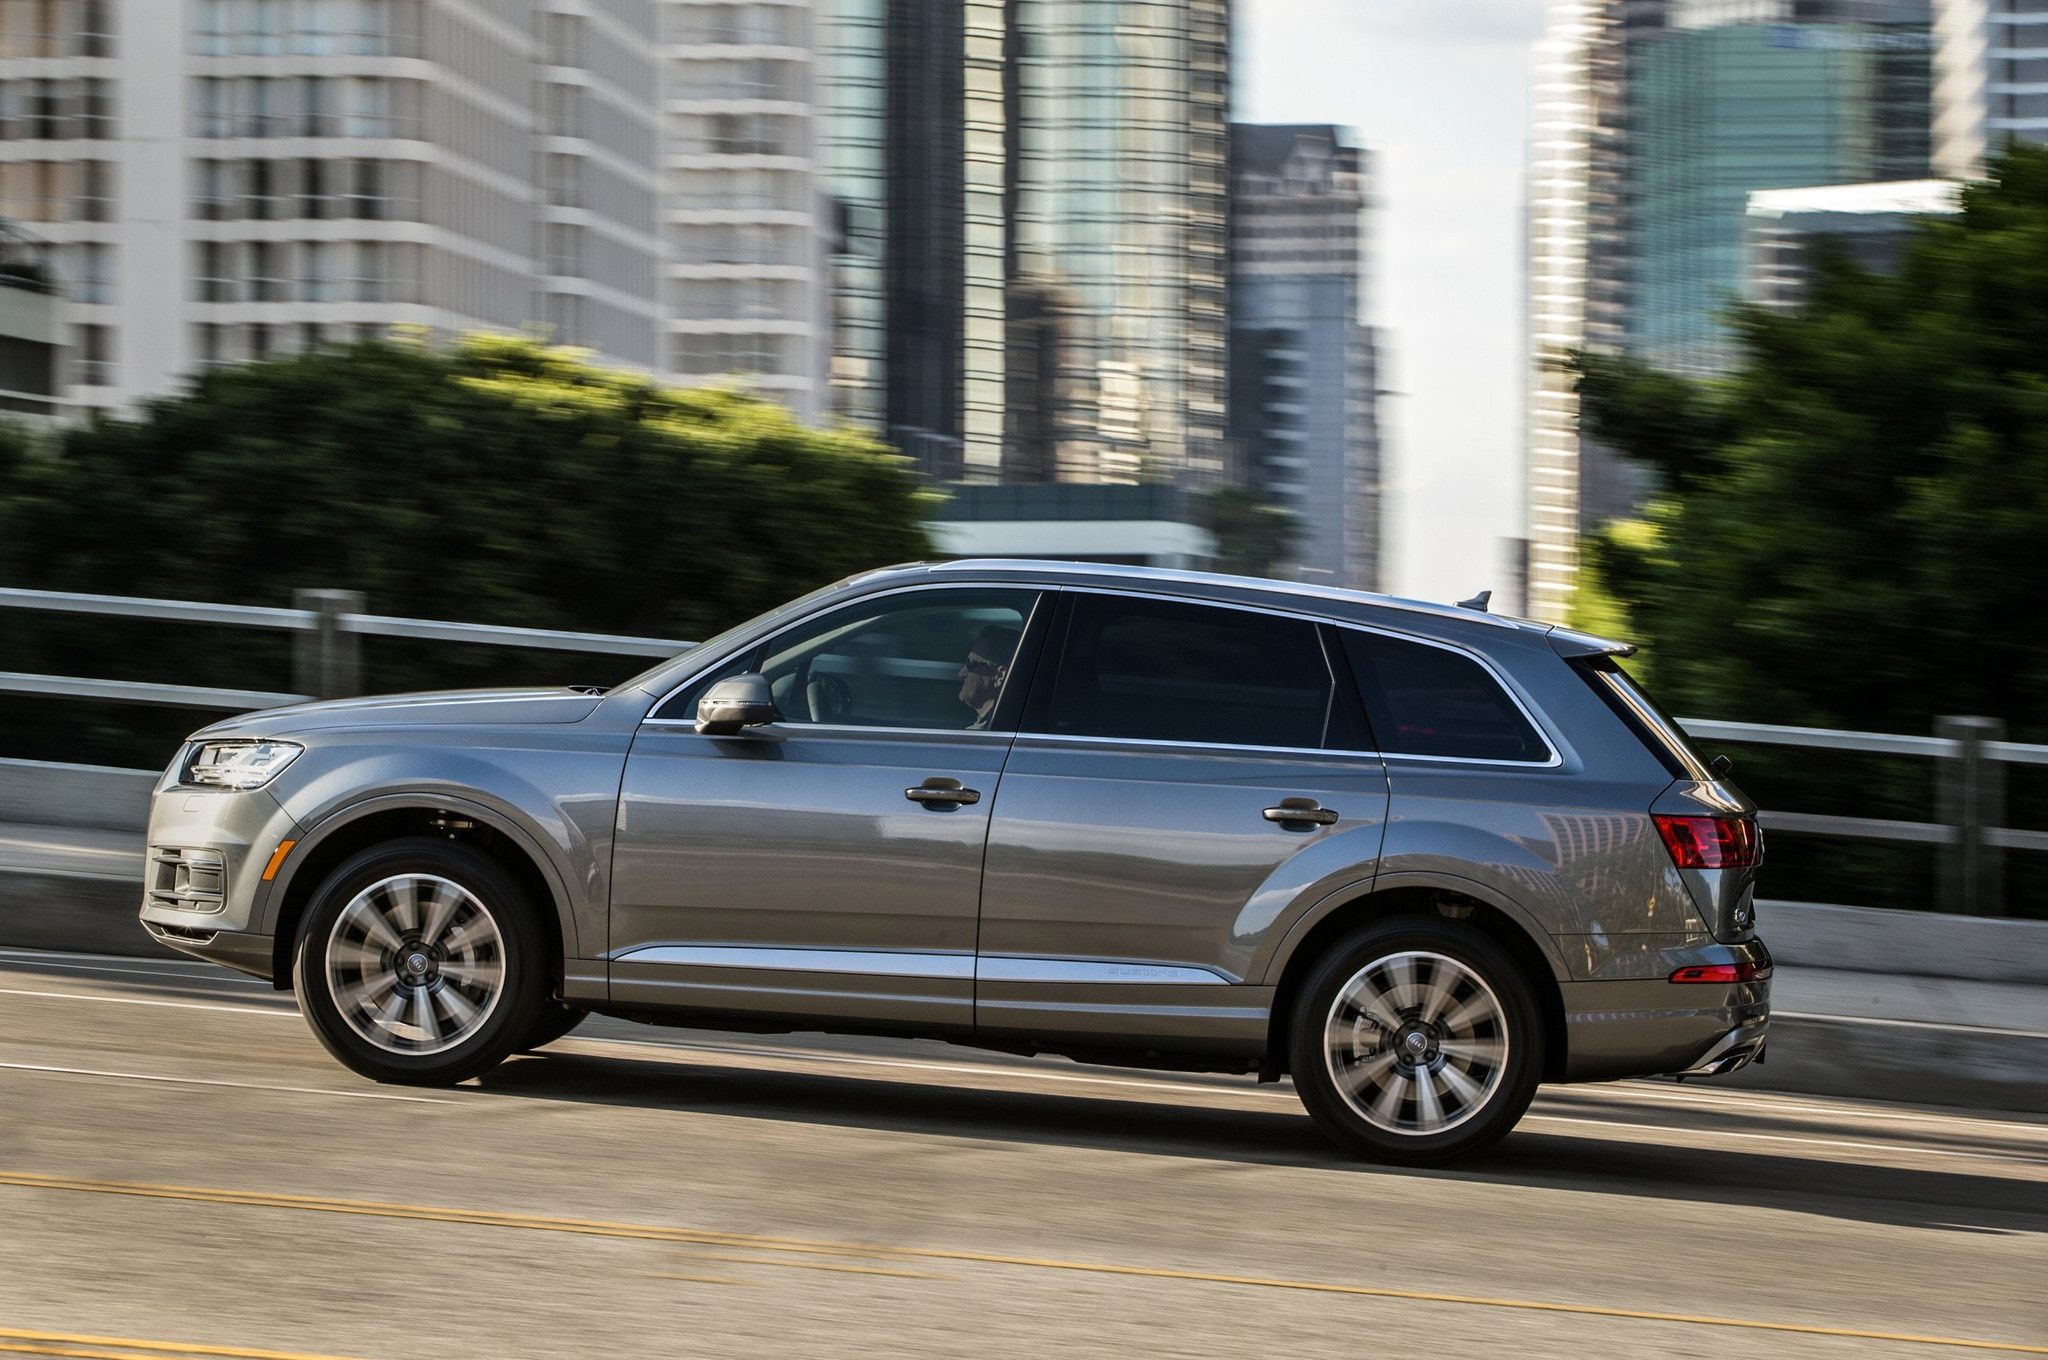 2017 Audi Q7 side profile in motion